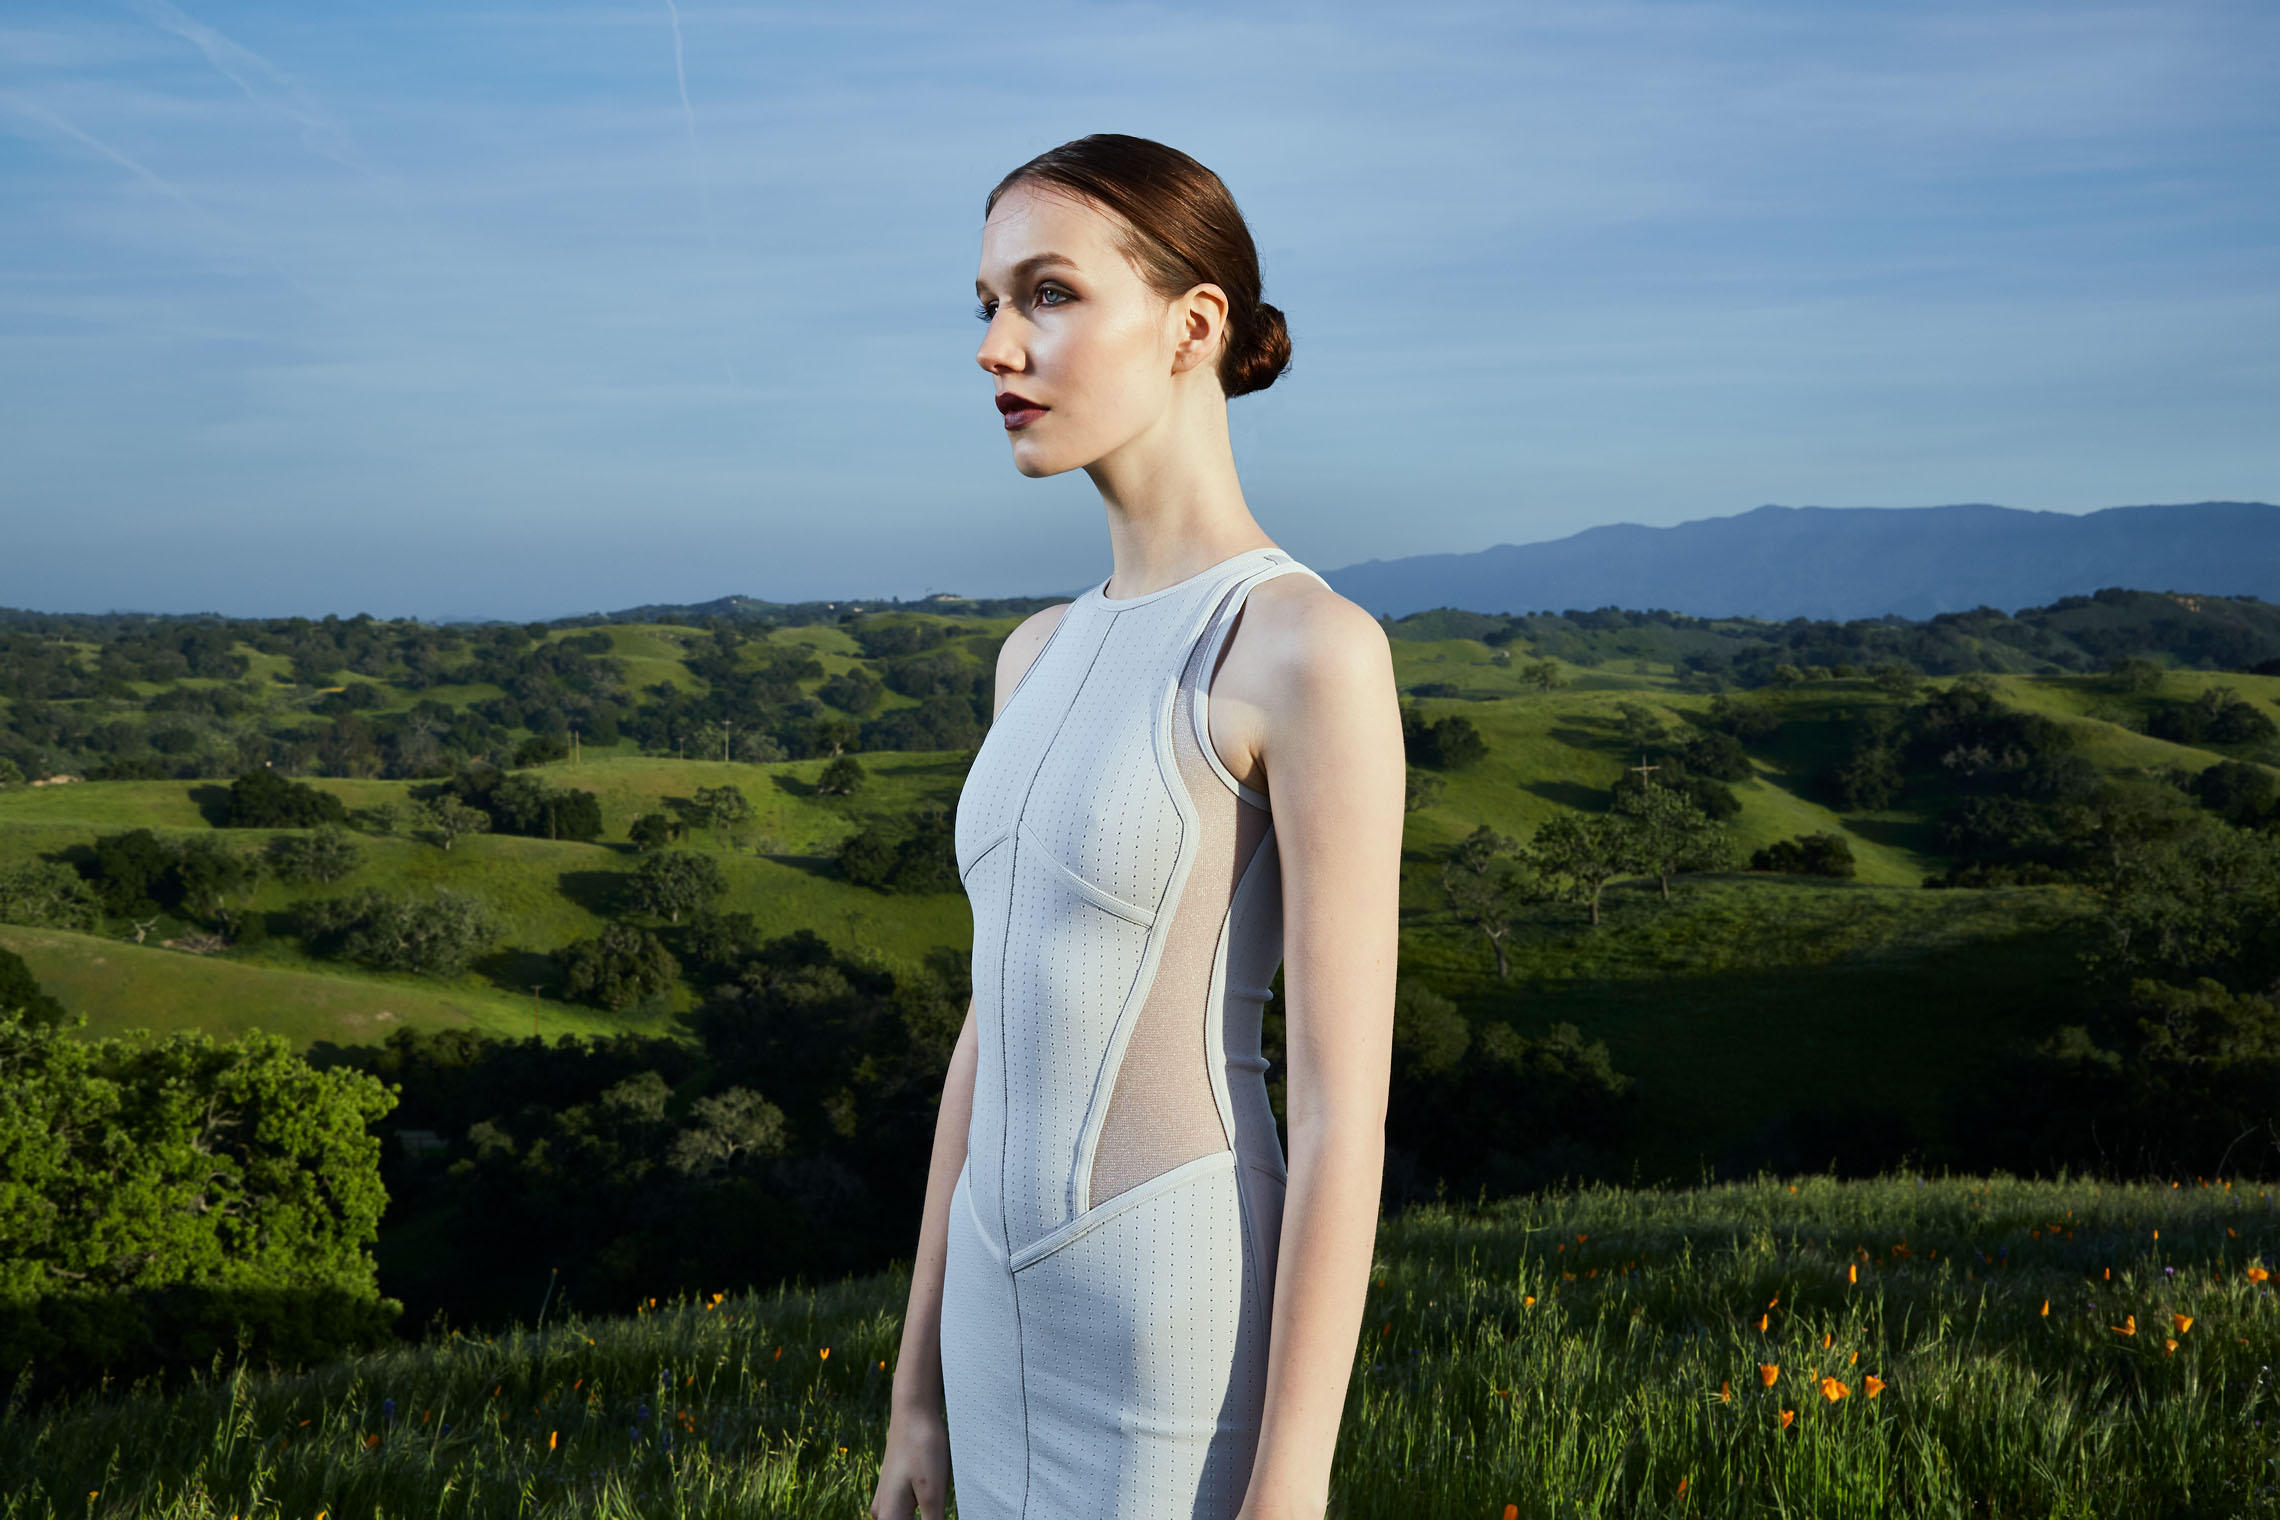 Fashion Photography Los Angeles - The Girl in the Landscape